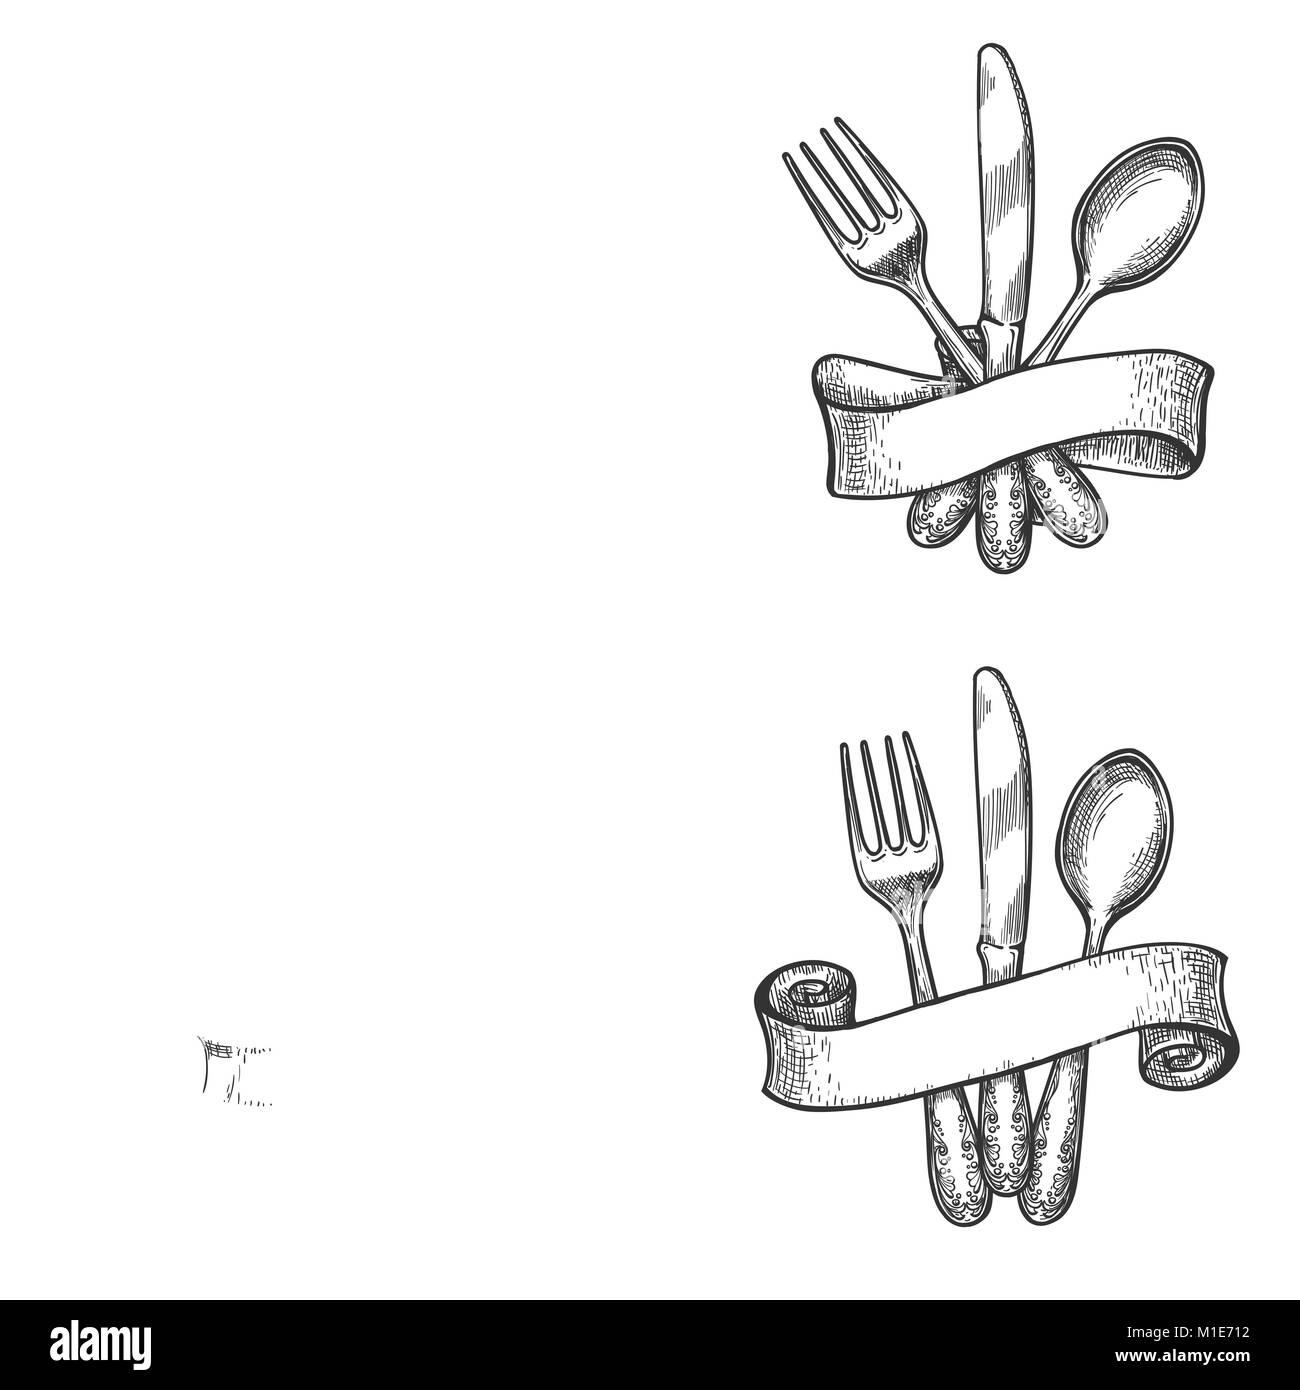 Cutlery sketch. Vintage dinner table silverware set with knife and ...